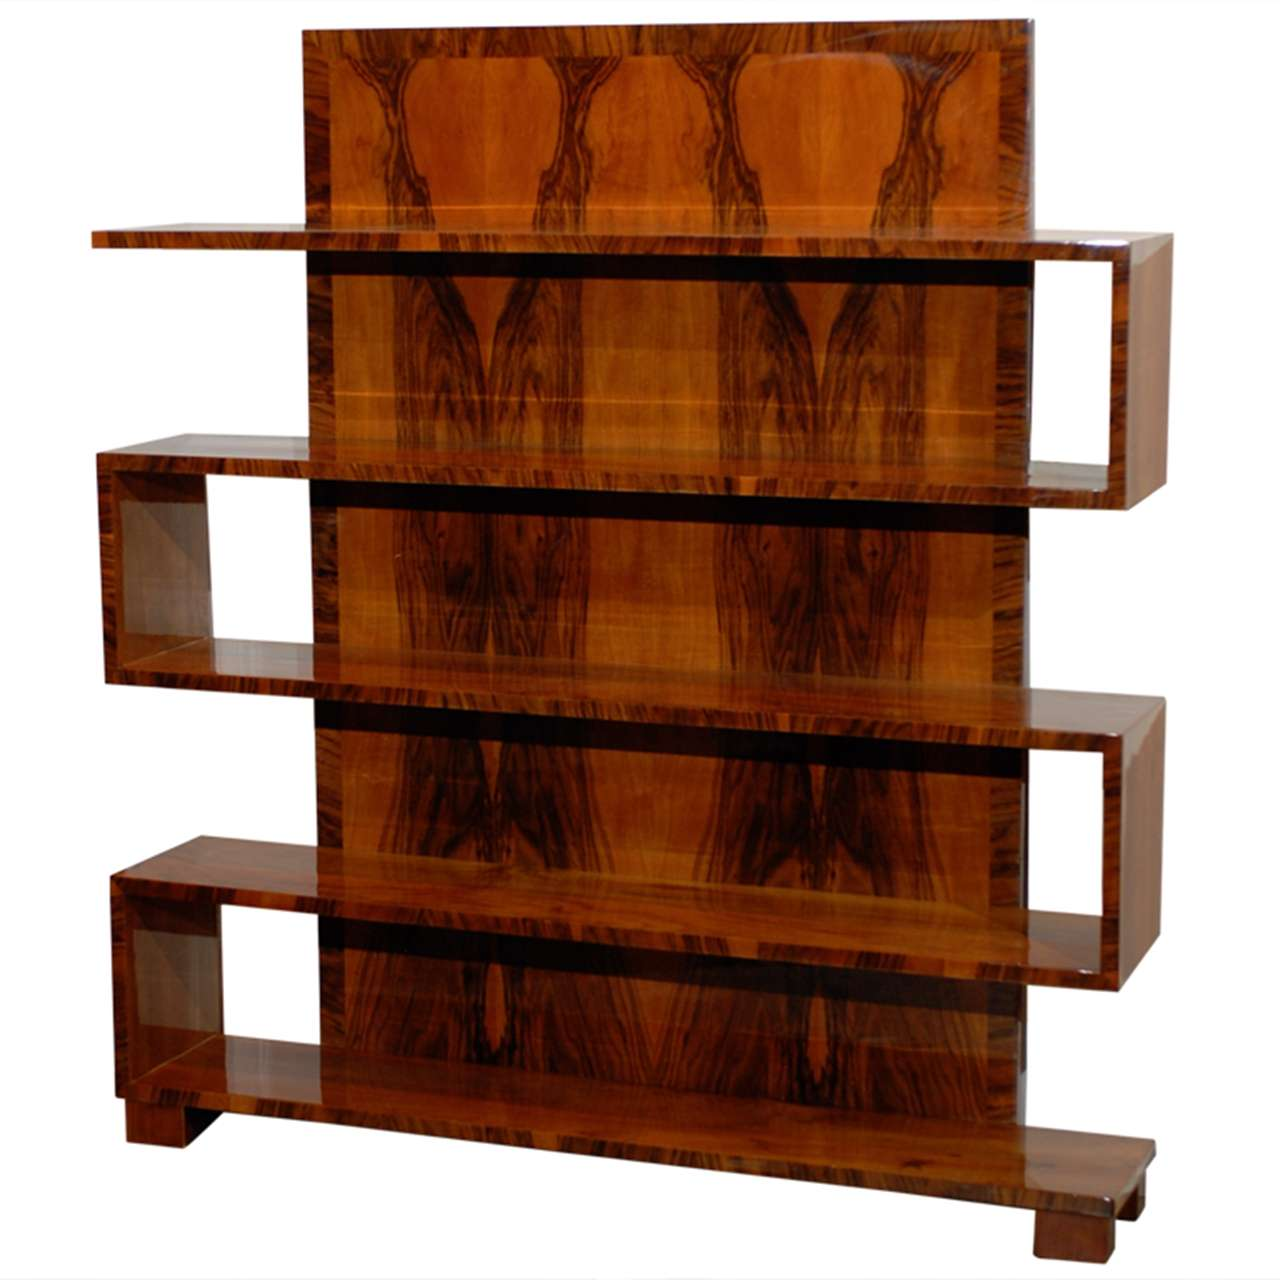 #B04E07 Jpg with 1280x1280 px of Best Modern Walnut Bookcase 12801280 image @ avoidforclosure.info